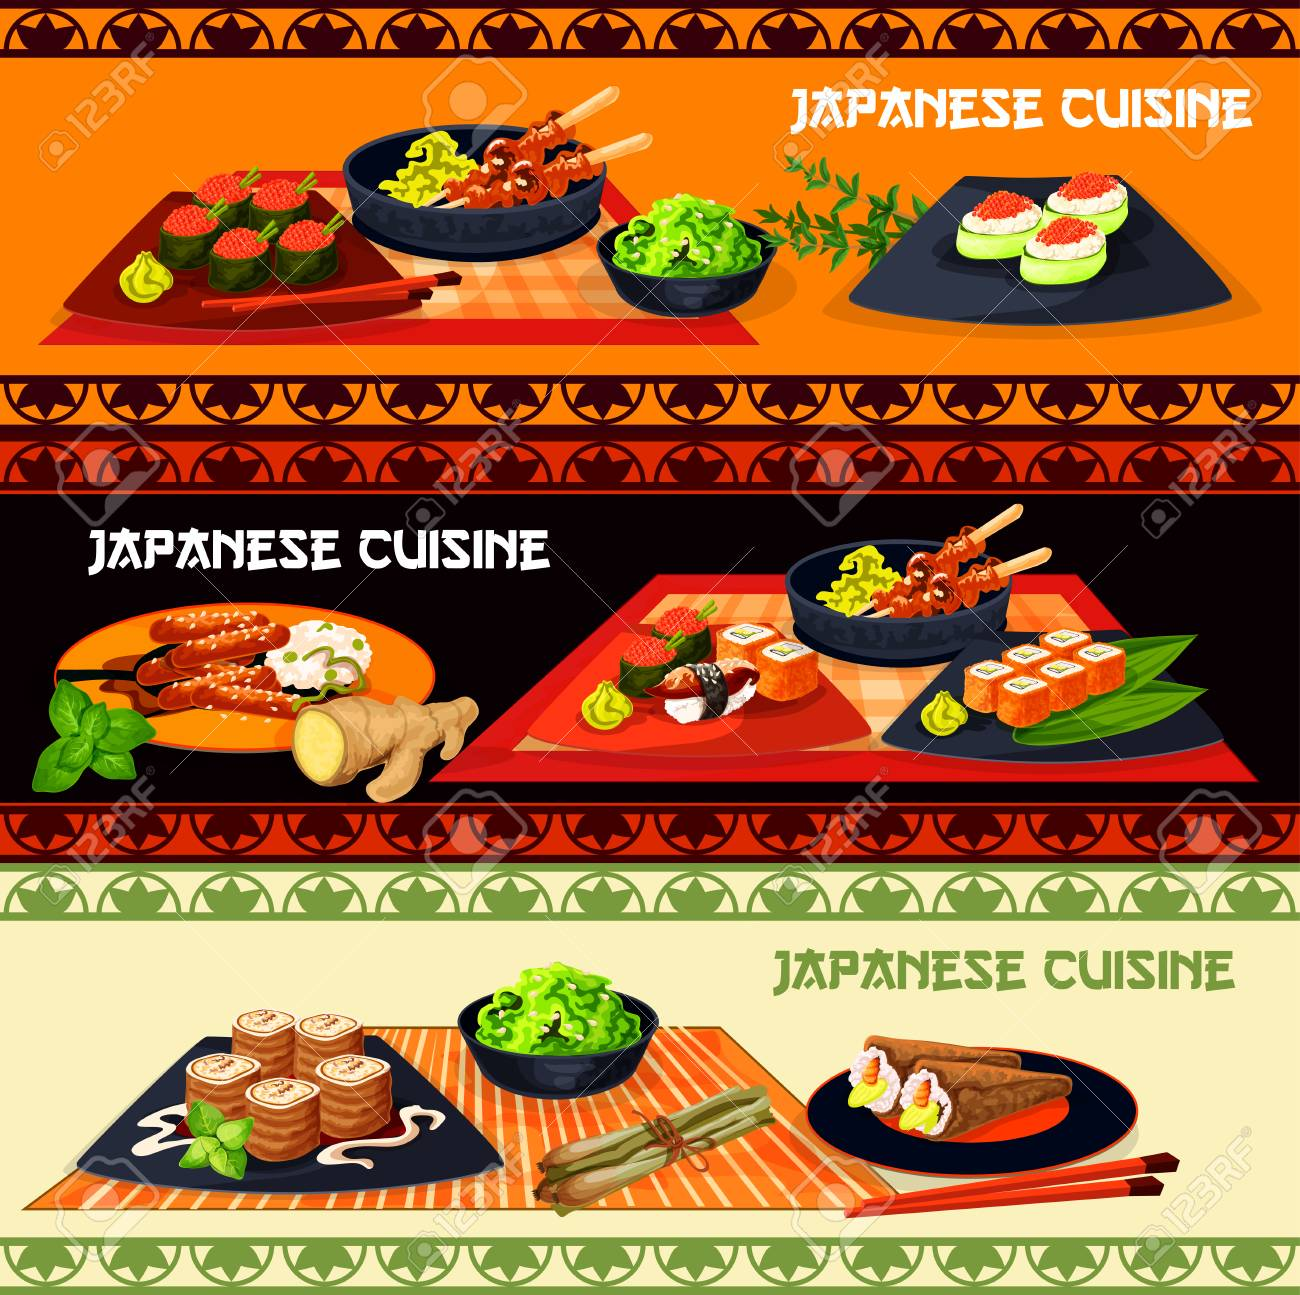 Japanese Cuisine Restaurant Dinner Menu Banner With Seafood And